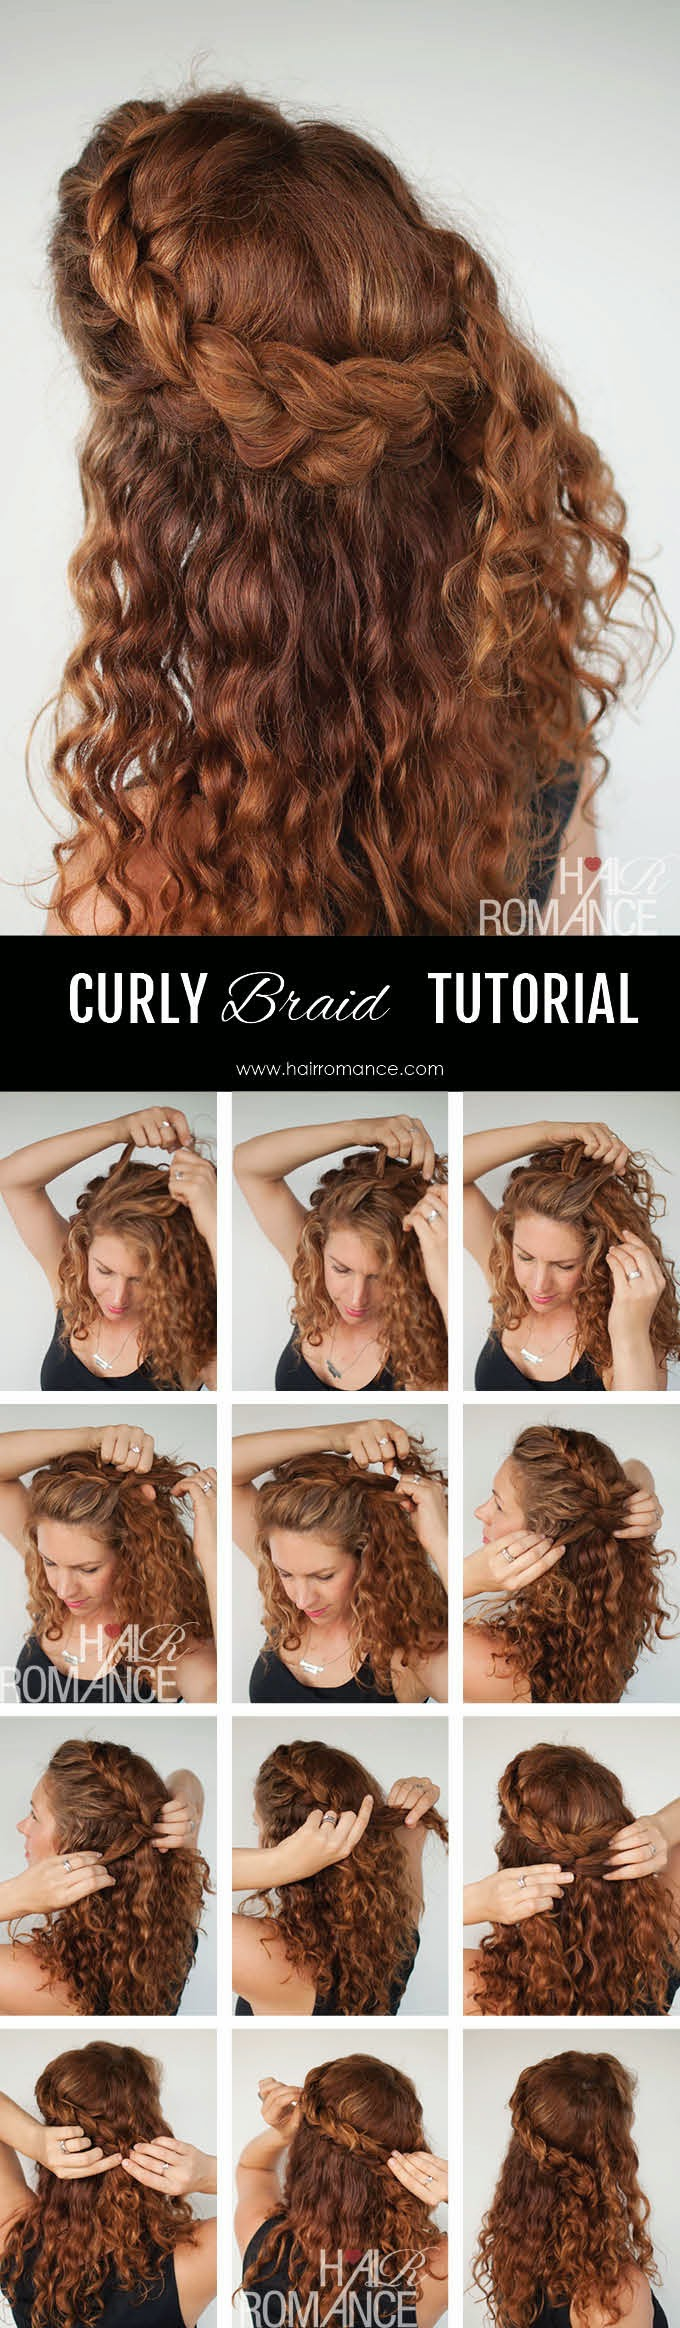 Tremendous The Half Up Braid Hairstyle Tutorial Curly Hair Tutorial Hairstyles For Women Draintrainus